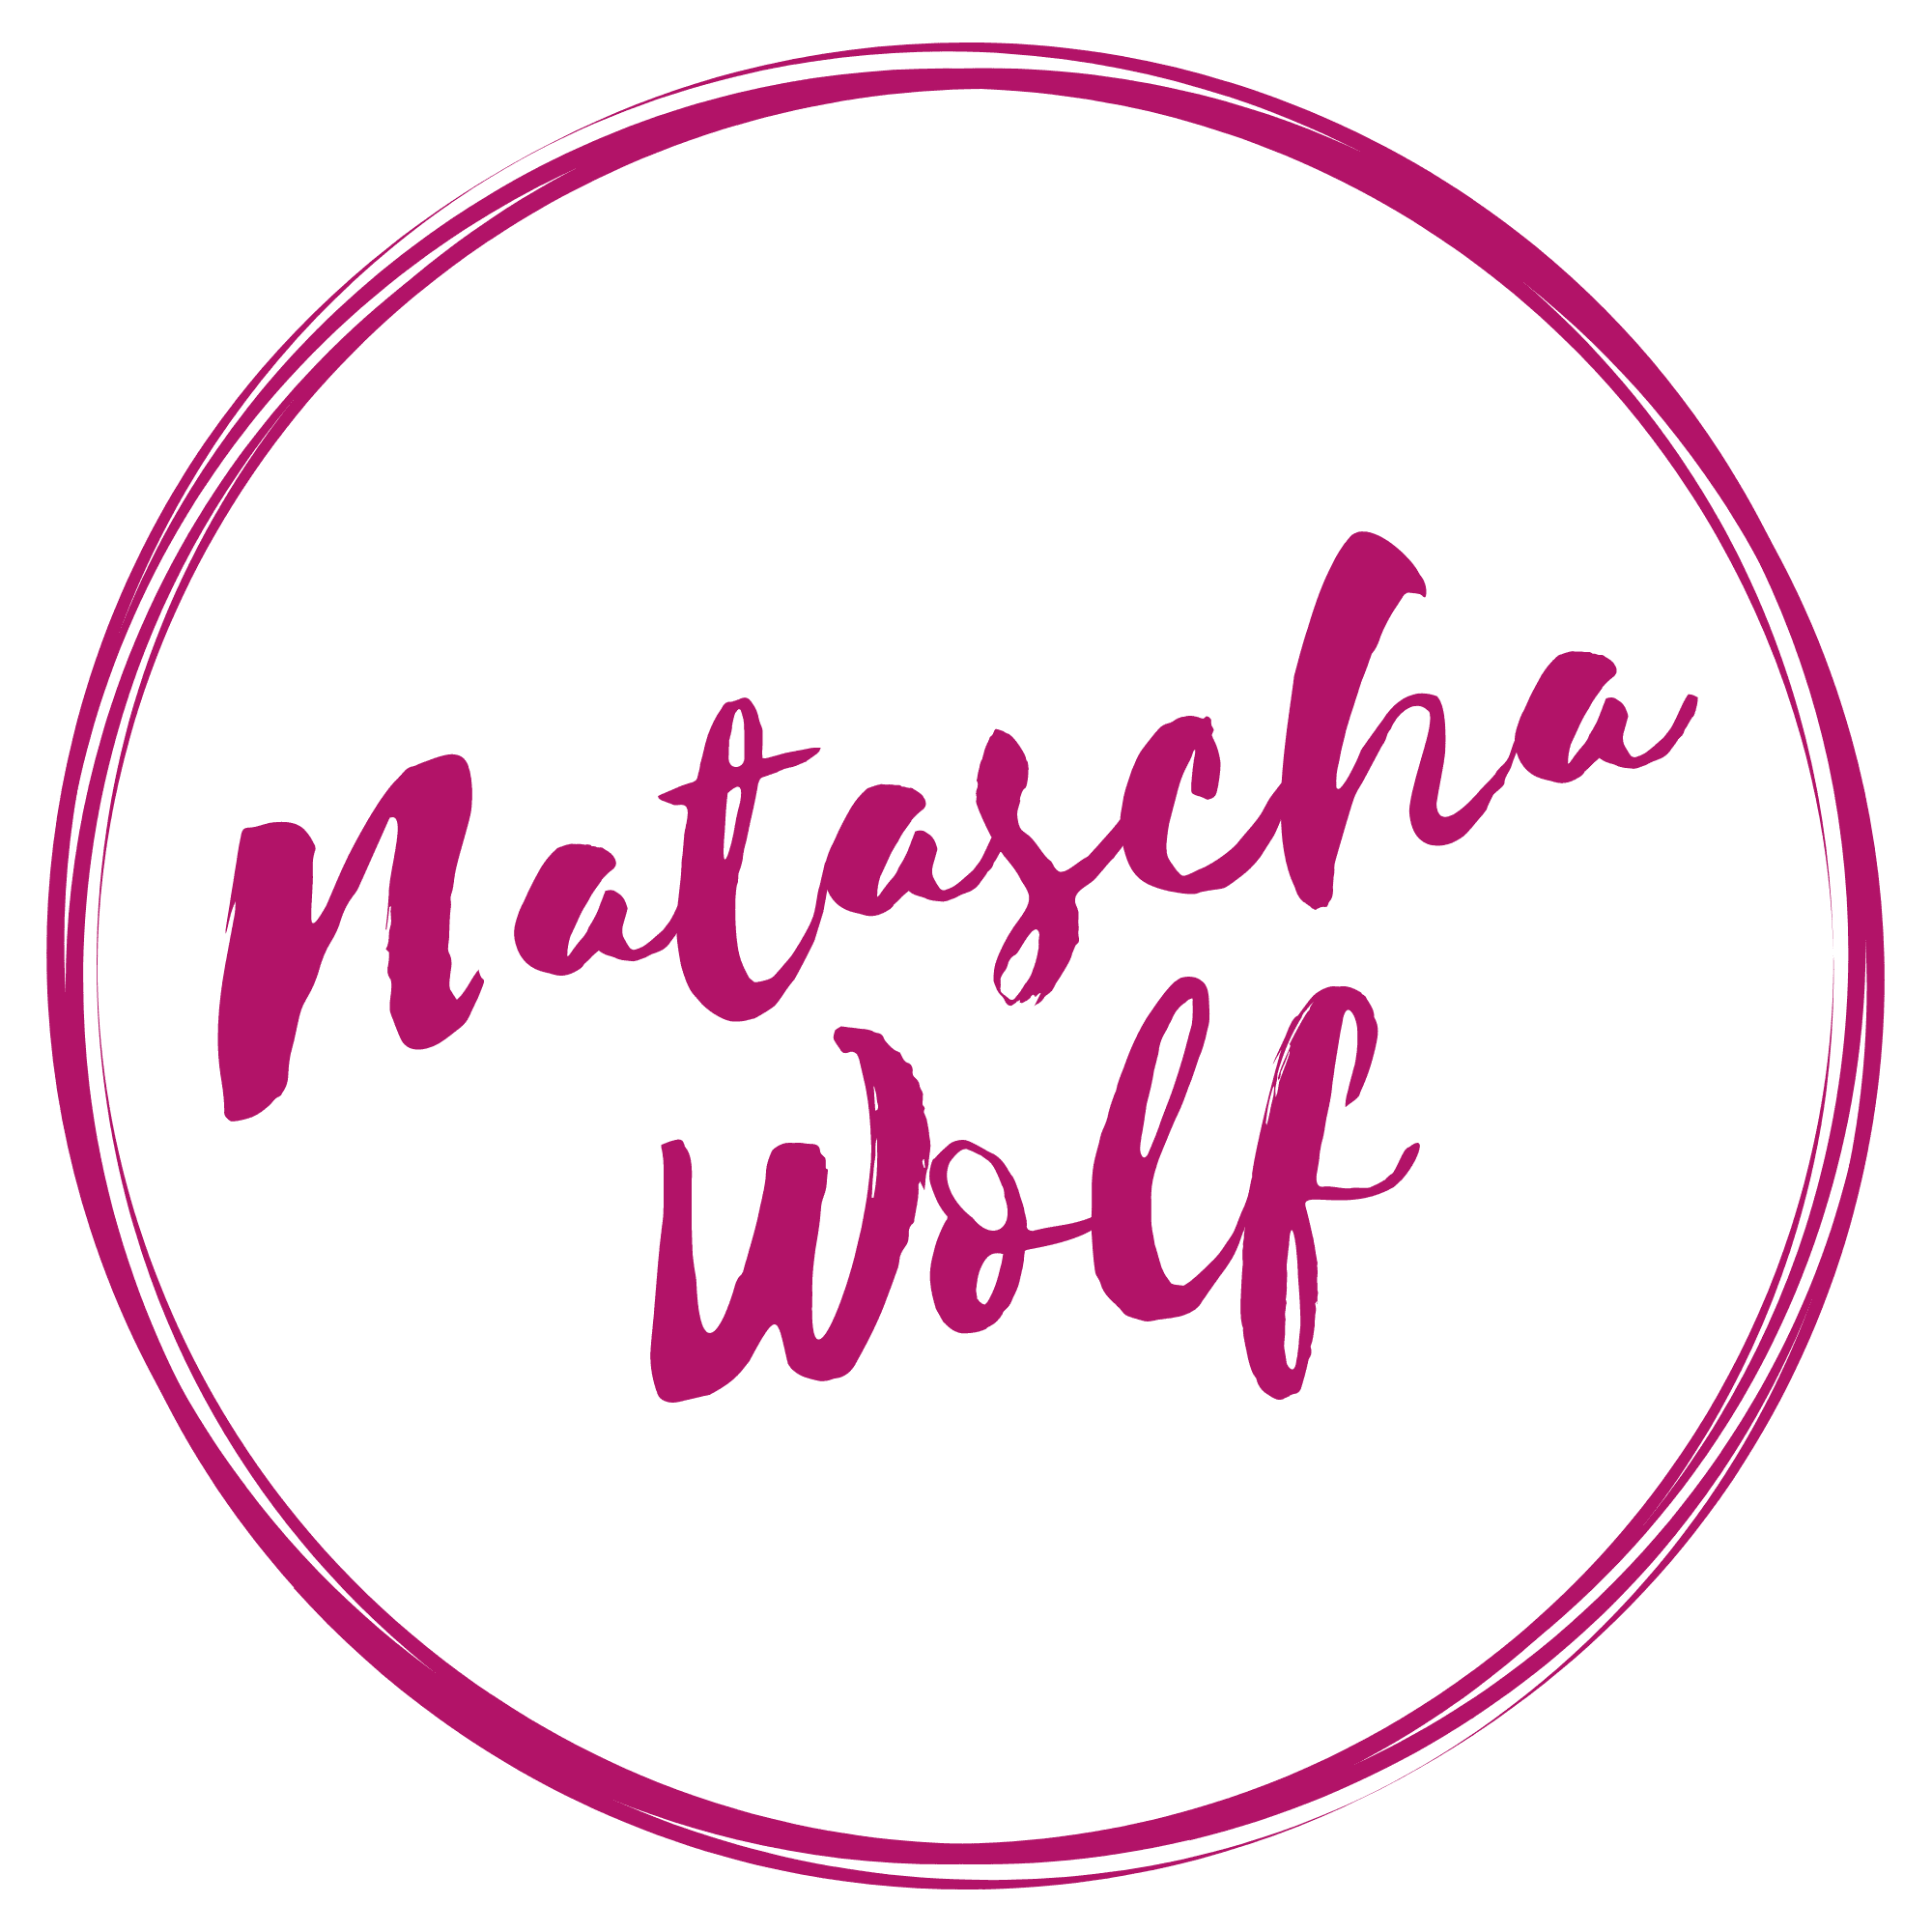 Complete.You! by Natascha Wolf